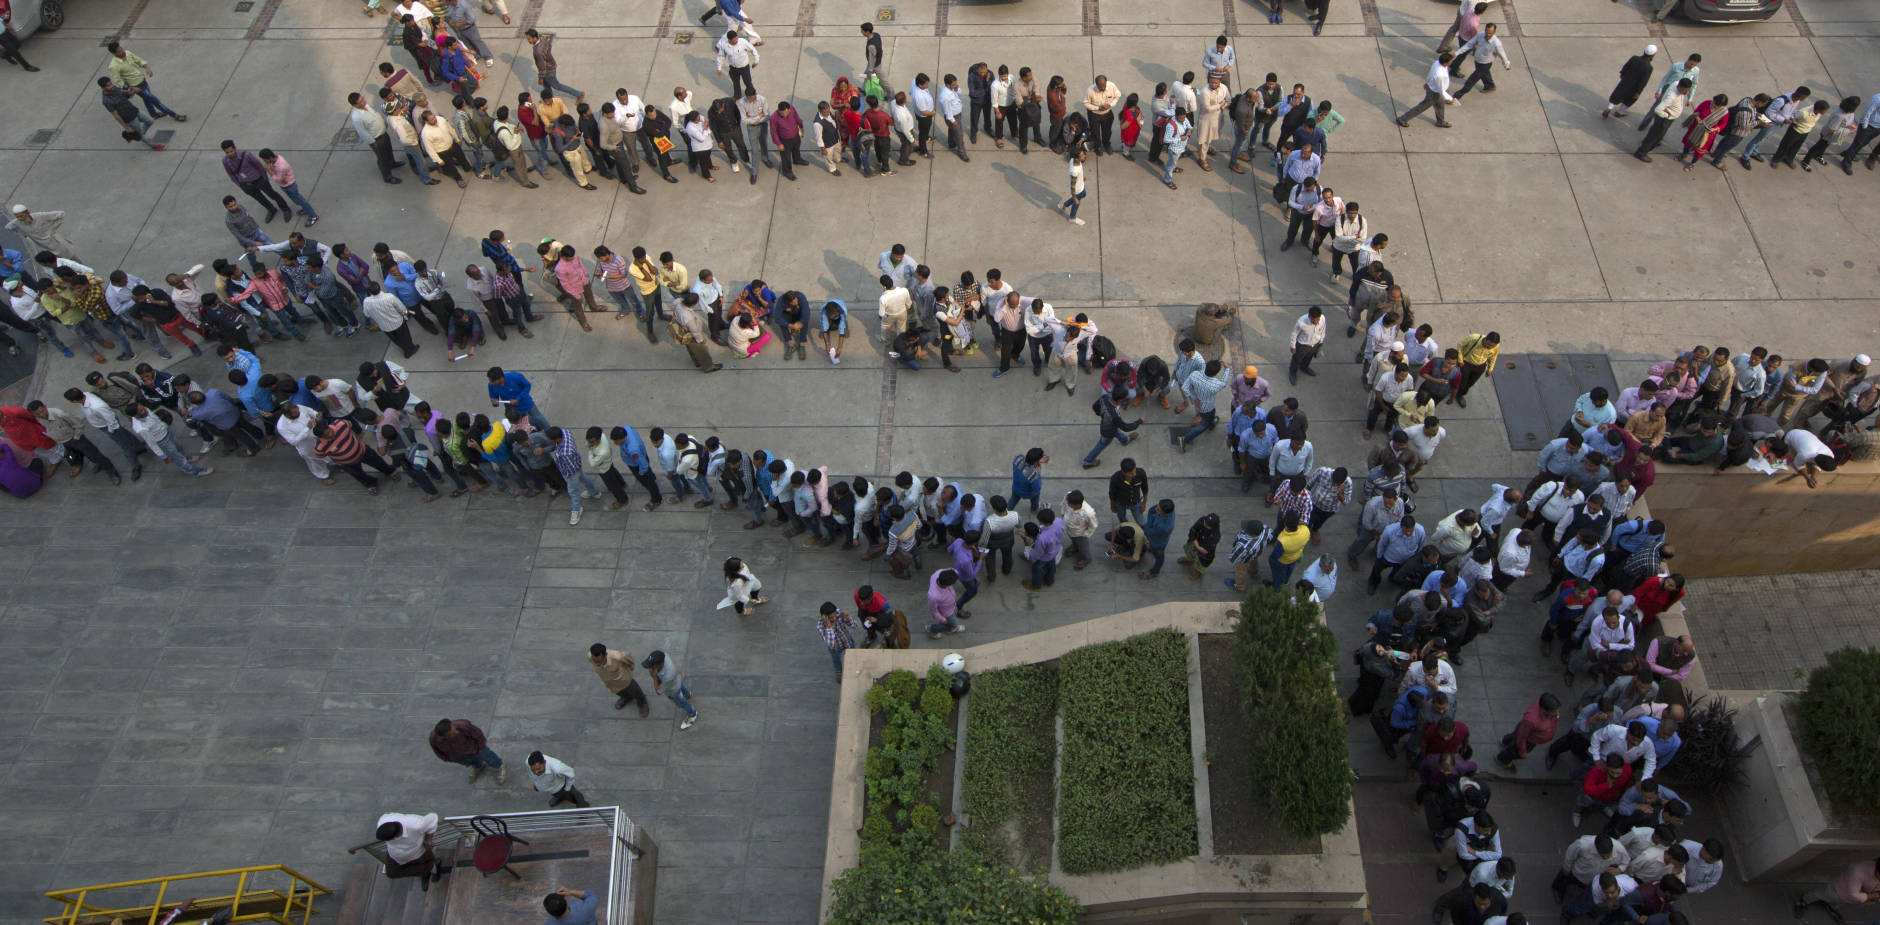 Indians stand in queues at a bank to exchange or deposit discontinued currency notes in New Delhi, India, Tuesday, Nov. 15, 2016. Chaotic scenes played out across India with long lines growing even longer and scuffles breaking out, as millions of anxious people tried to change old currency notes that became worthless days earlier when the government demonetized high-value bills. (AP Photo/Manish Swarup)